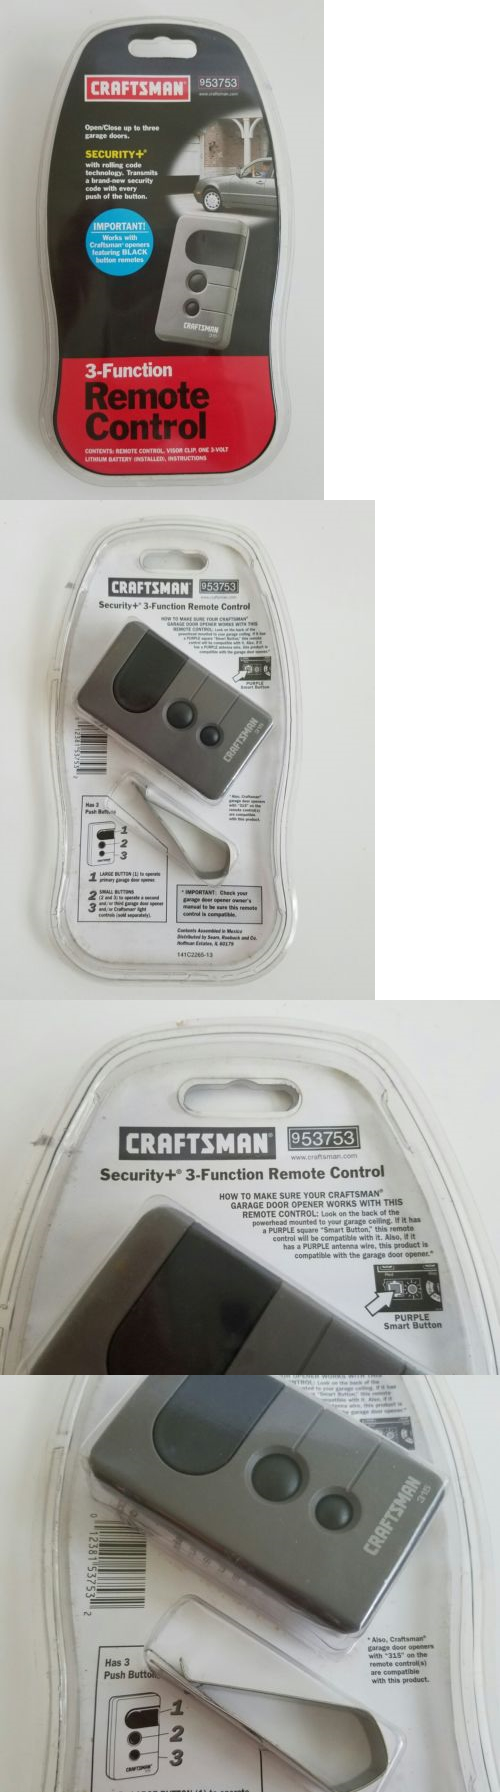 Garage Door Opener Remote Antenna For Remotes 85899 Sears Craftsman Control Black Buttons 53753 New